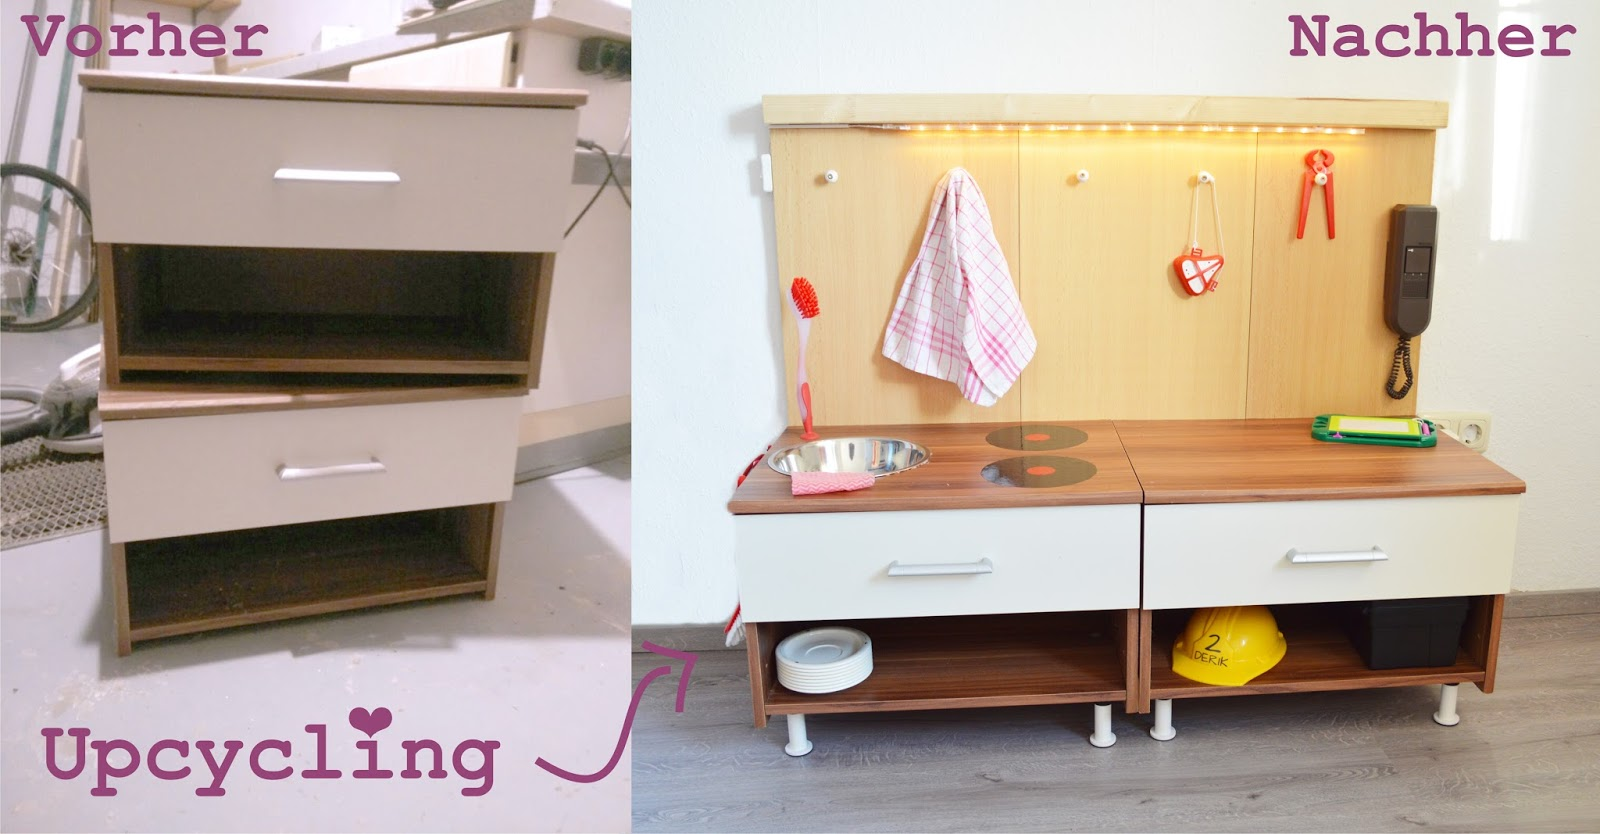 ideenwiese upcycling kinderk che werkbank. Black Bedroom Furniture Sets. Home Design Ideas